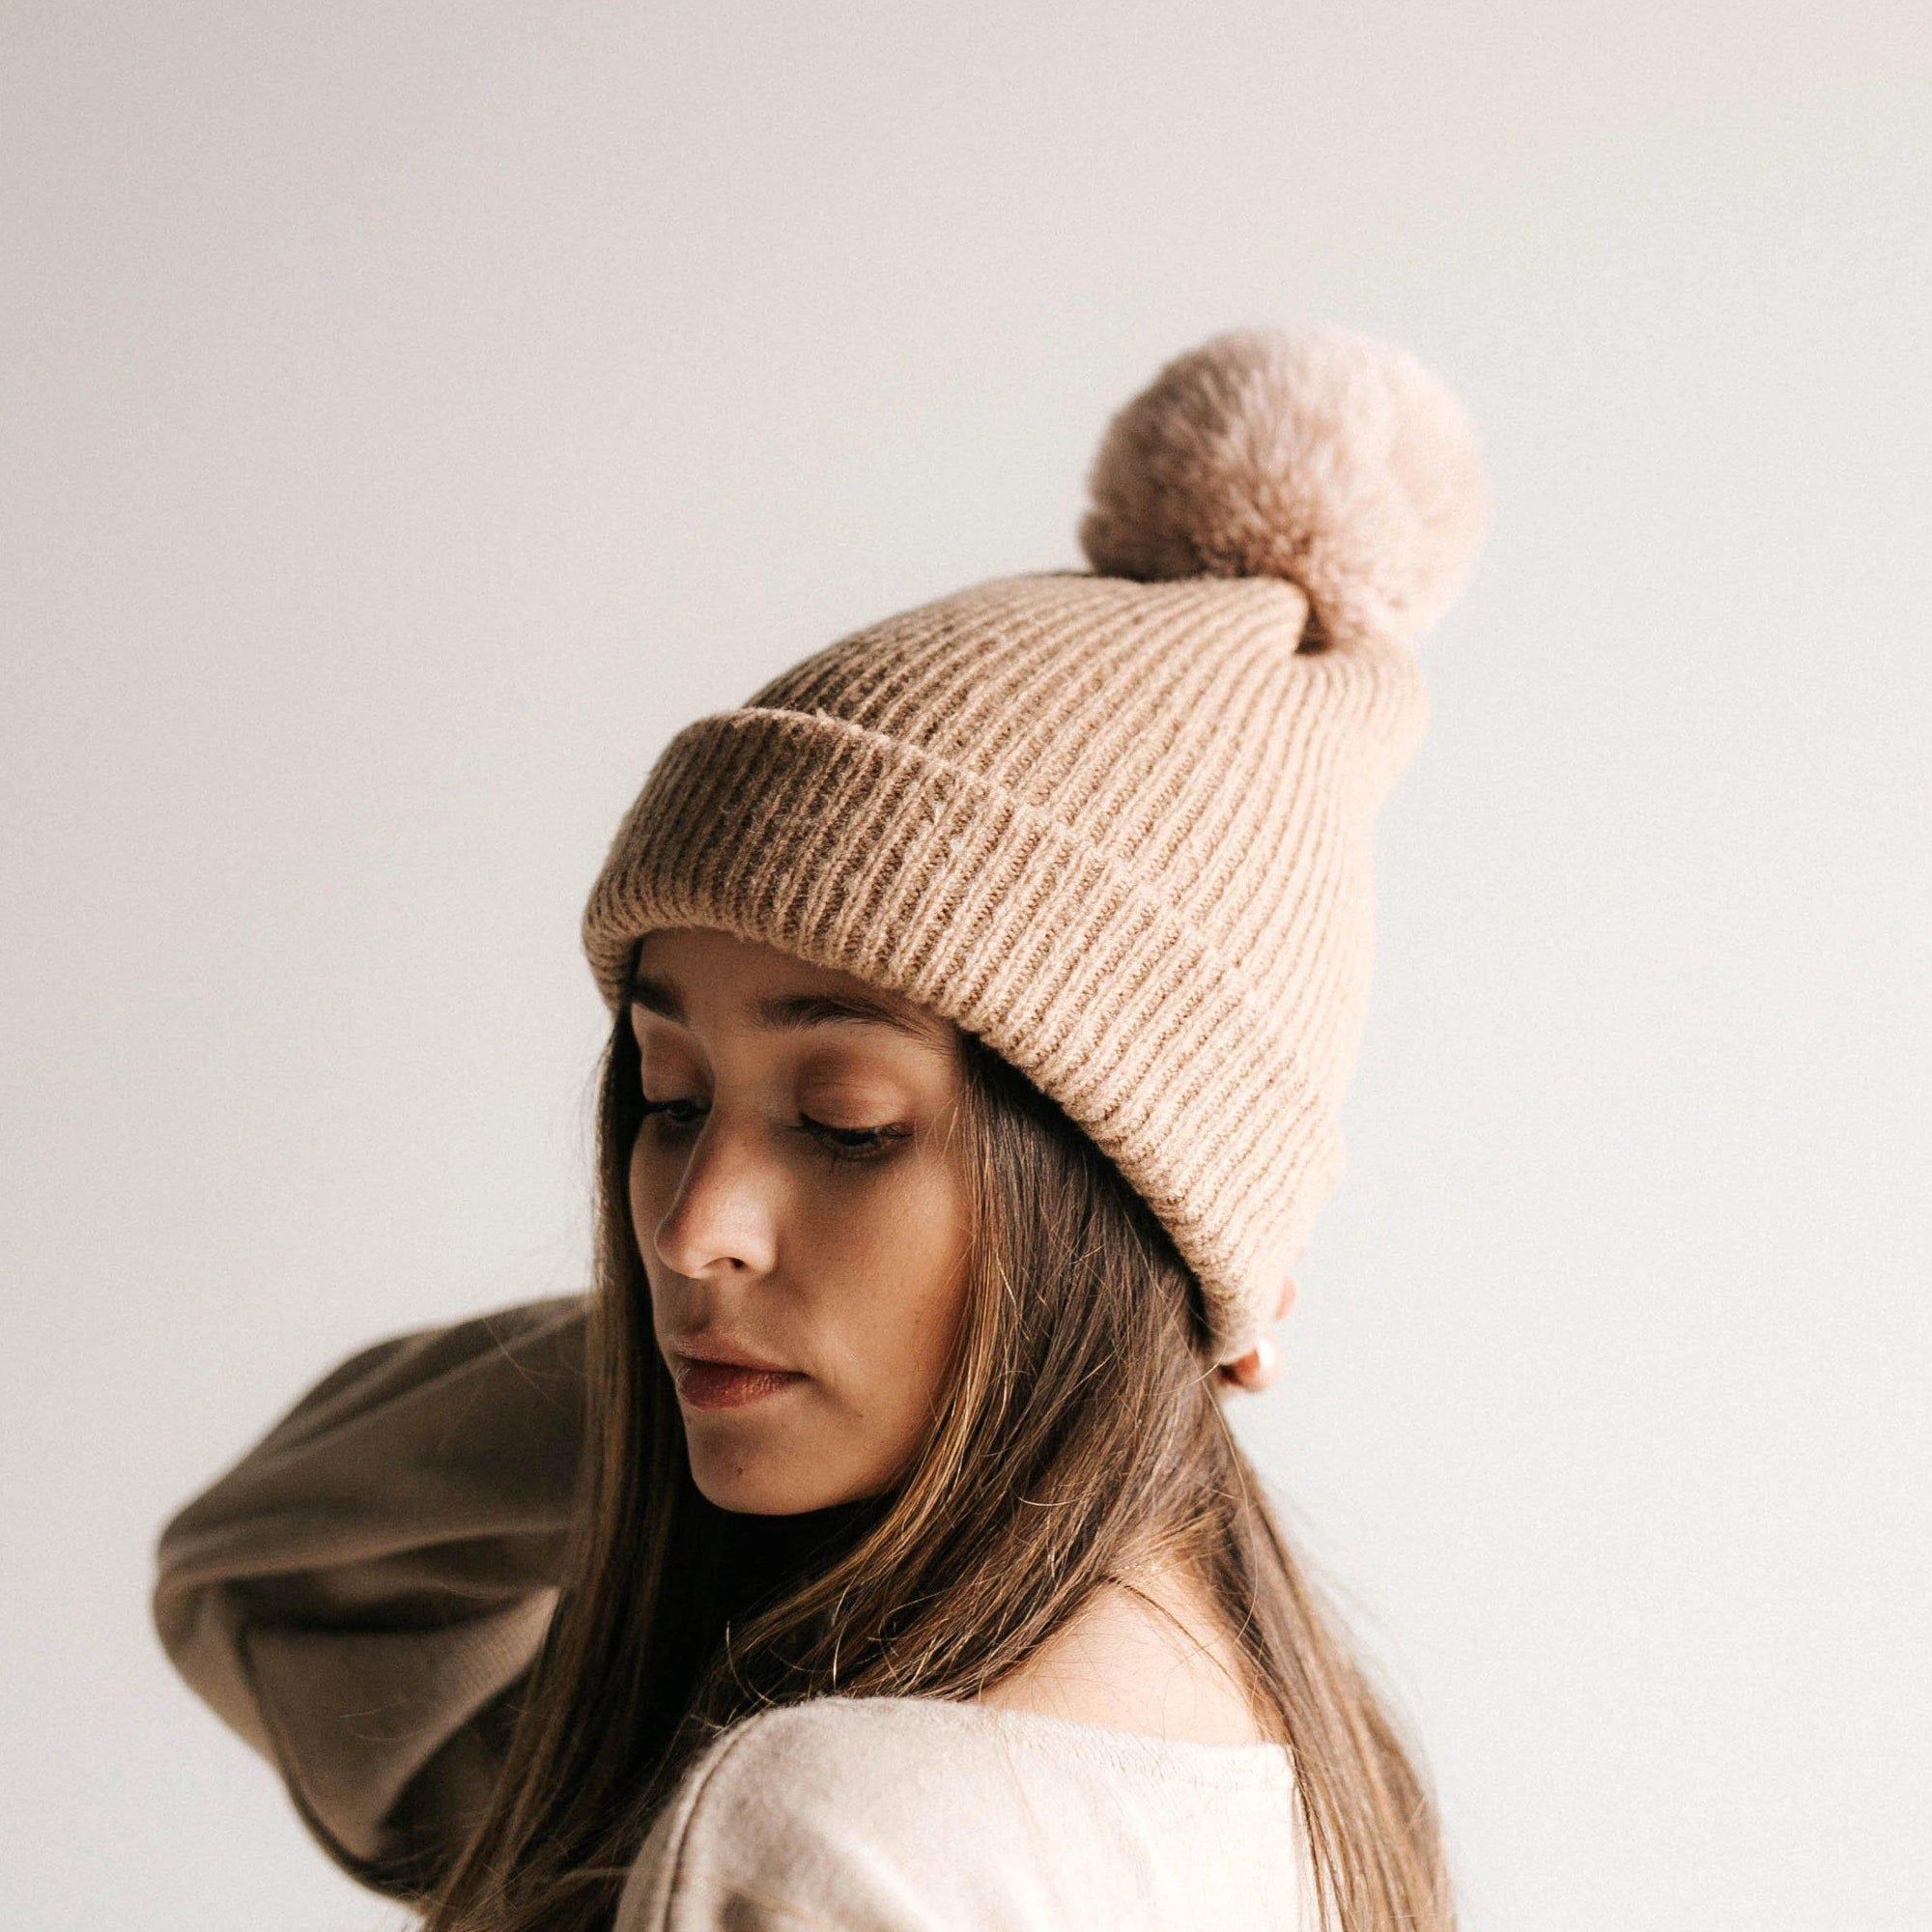 GIGI PIP Hats for Women- Dylan - Tan with Blush Pom-Beanie